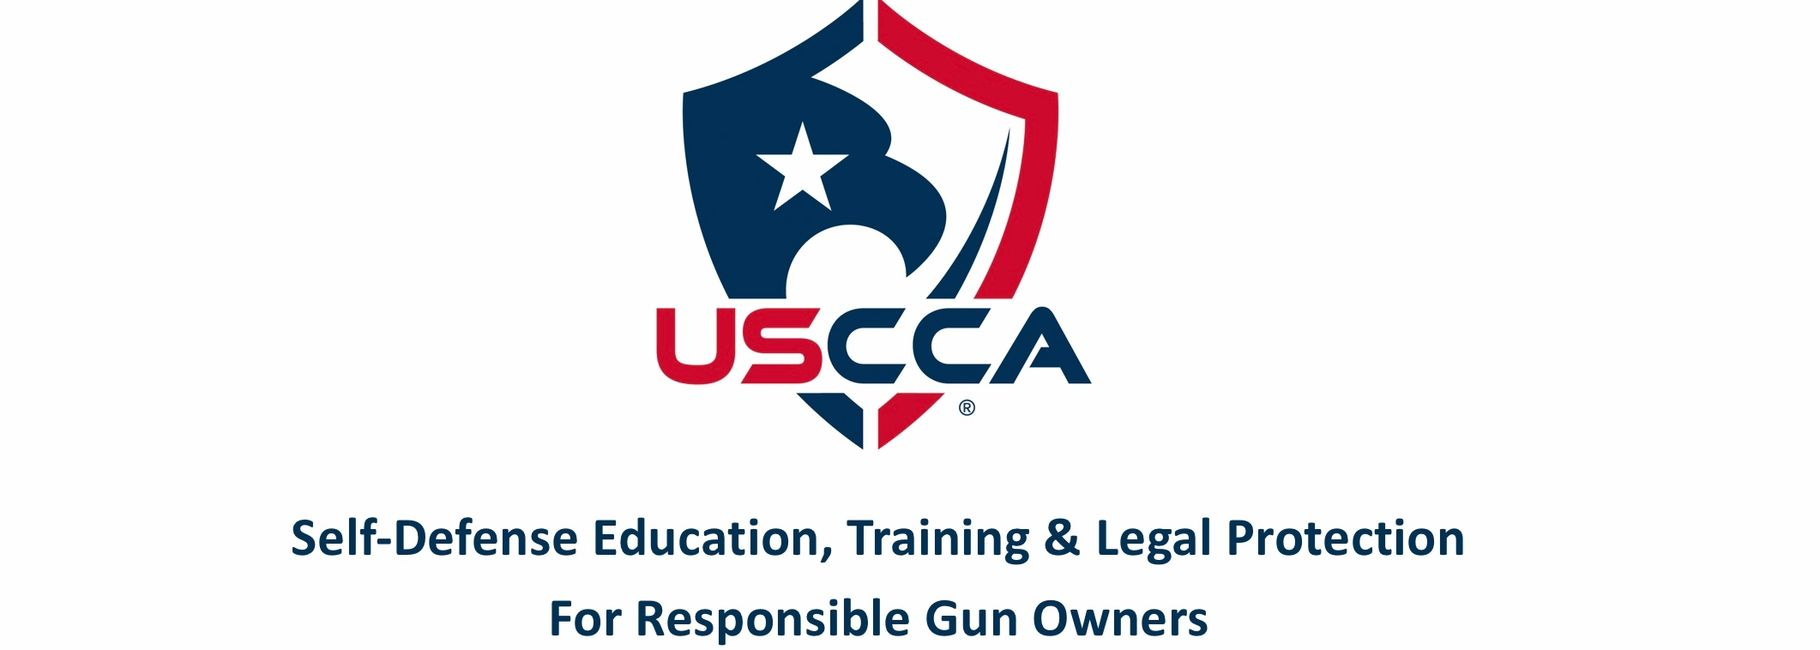 Learn more about the USCCA here.